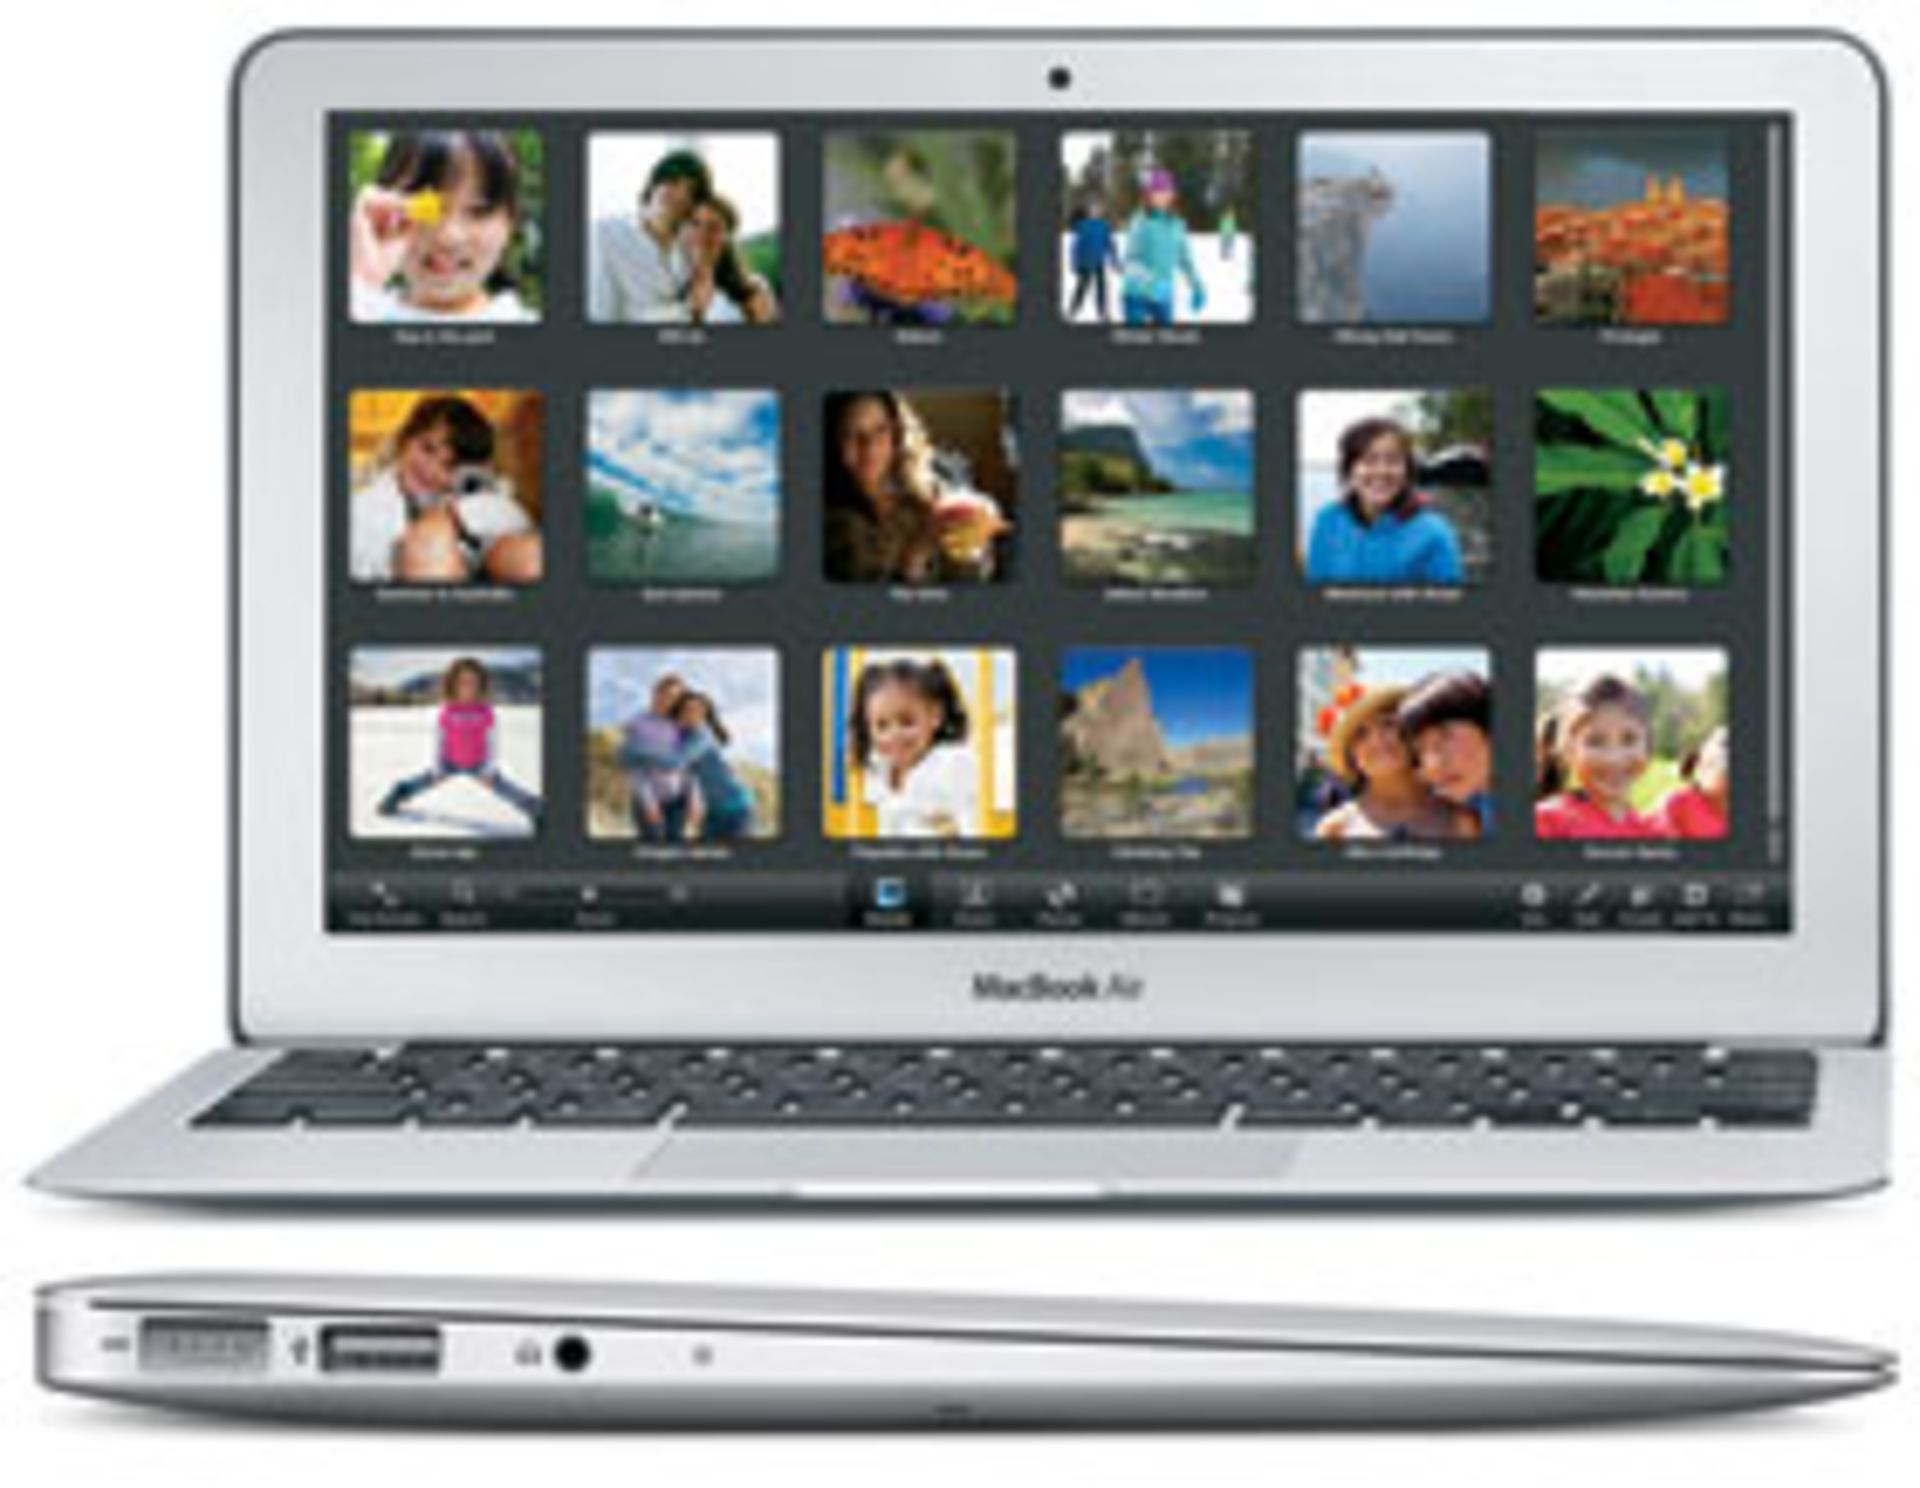 Lot 60028 - V Grade B Macbook Air 11.6 Inch Core 2 Duo - 64GB SSD - A1370 - Available Approx 7 Working Days